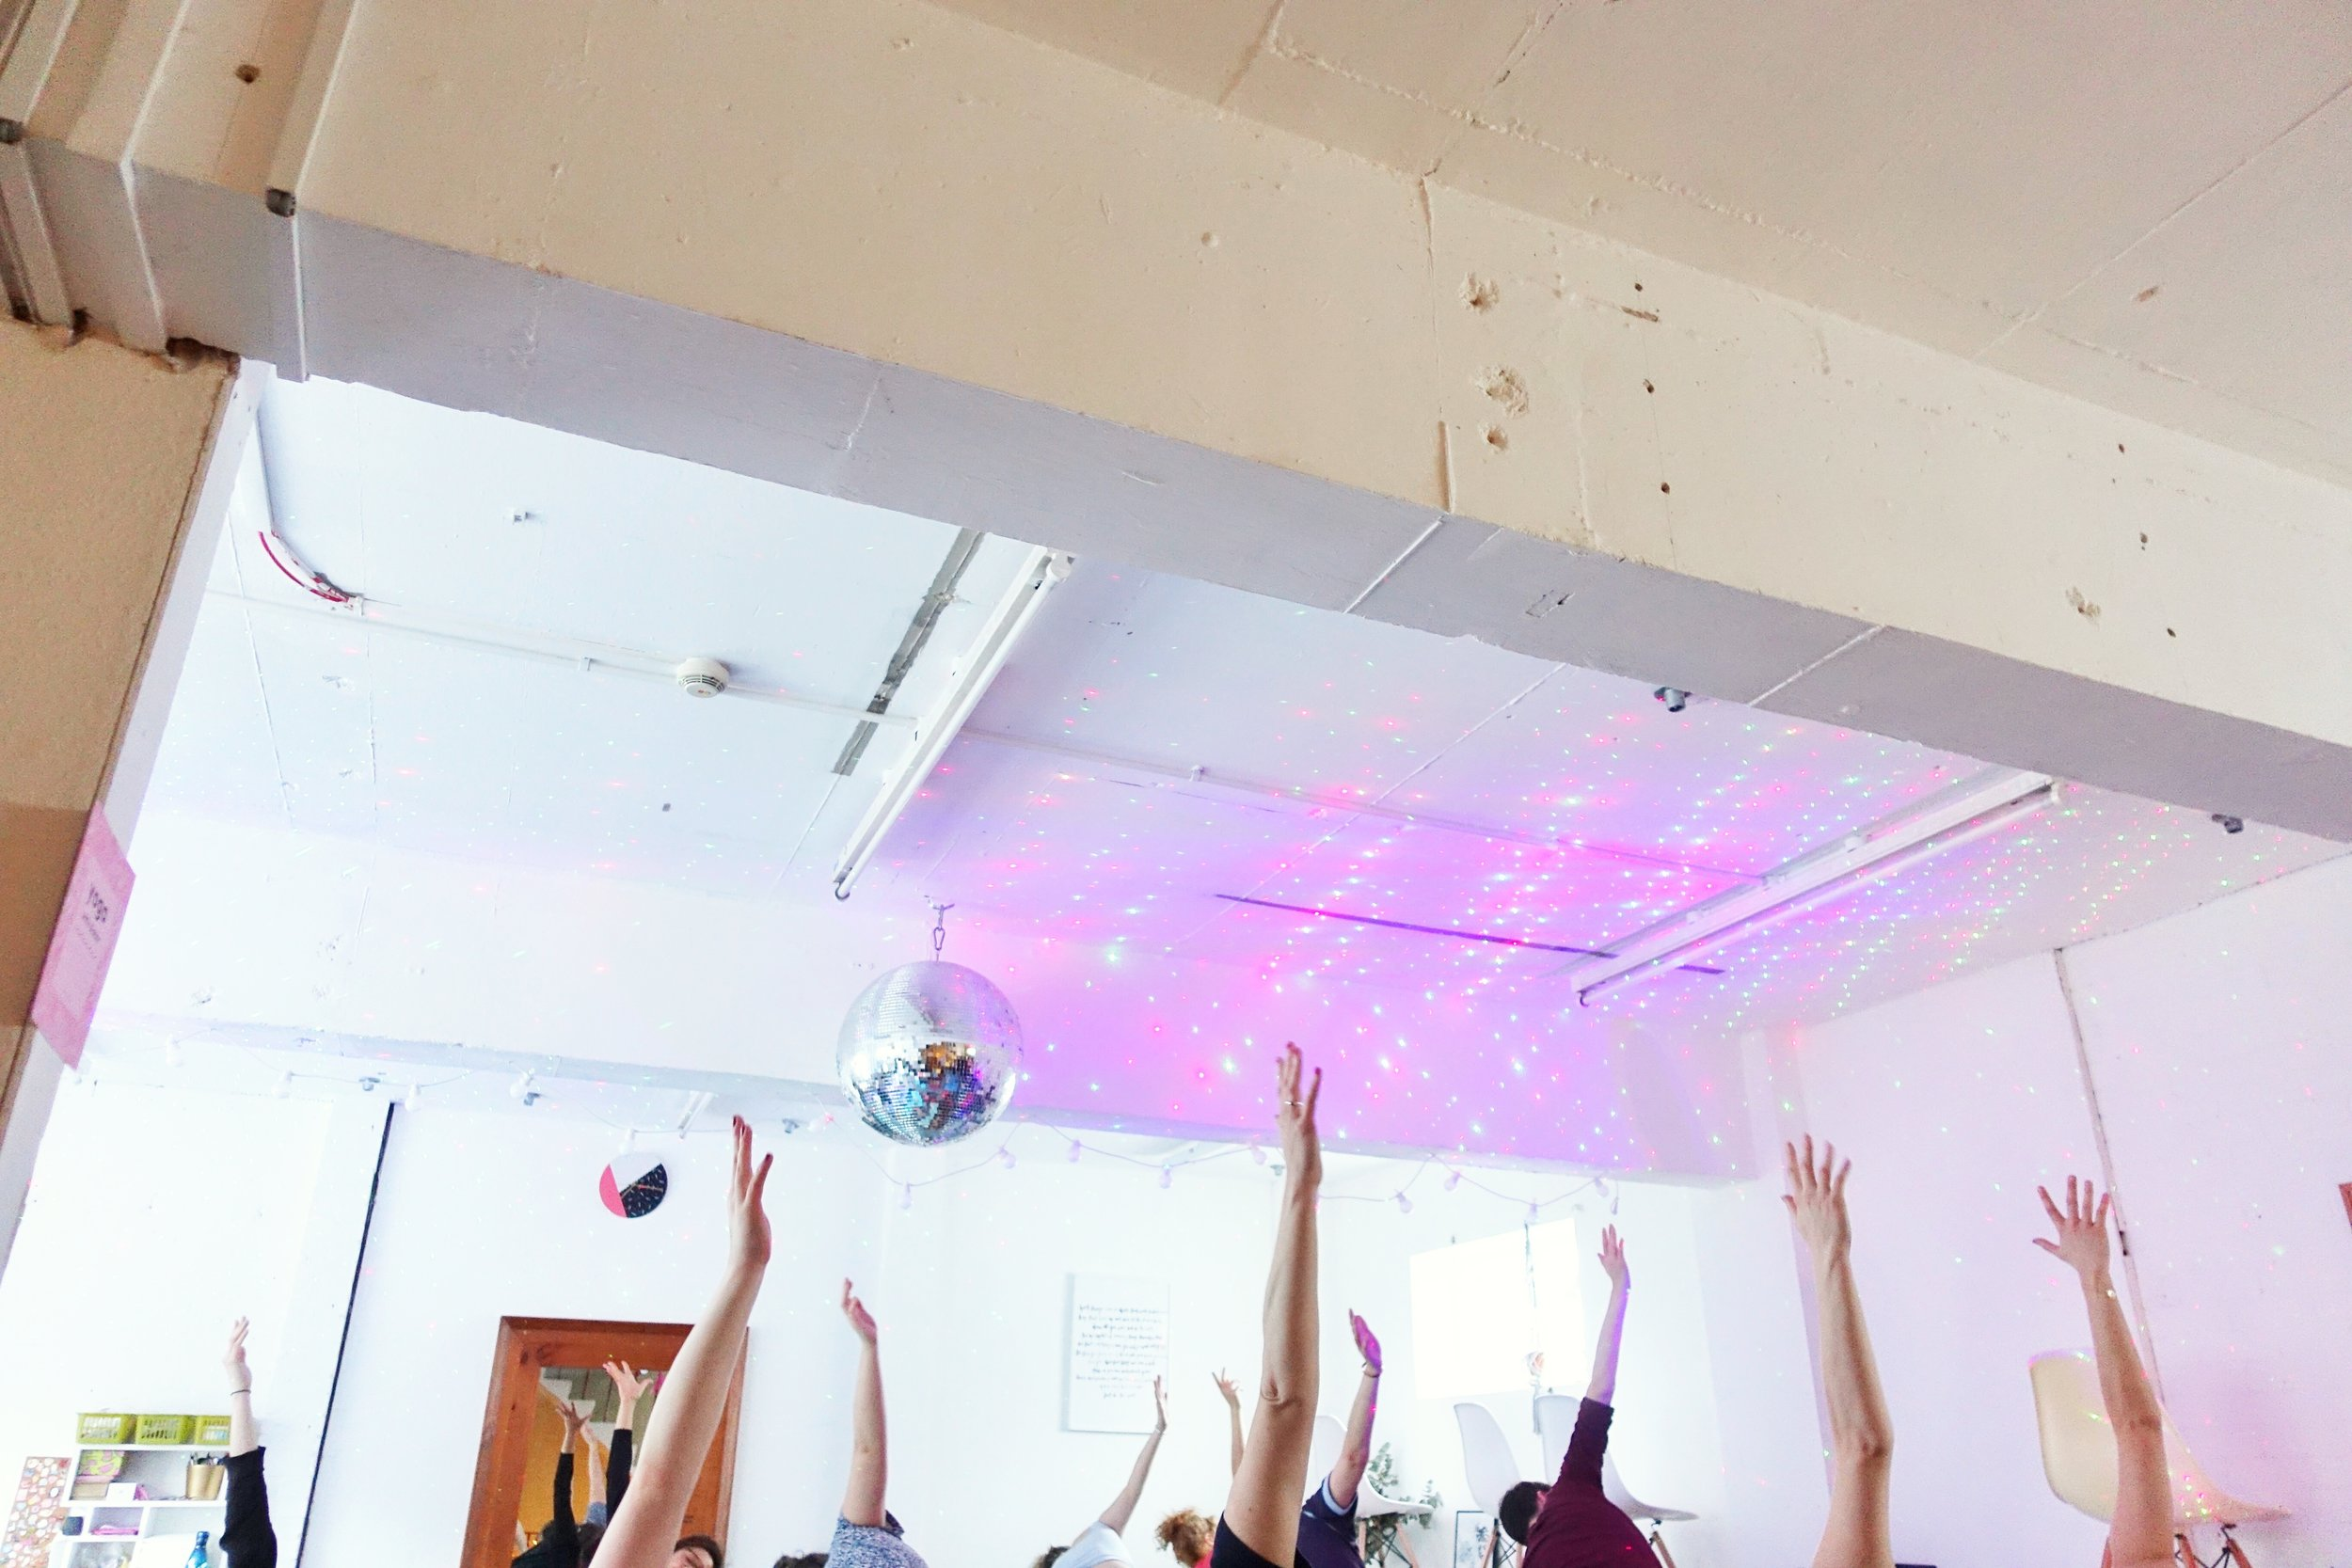 Community Yoga in Brighton (UK) - From chicken shops, a startup school, a women's co-working space, an acting school, a nightclub - we've had sessions in some interesting spaces in the city!